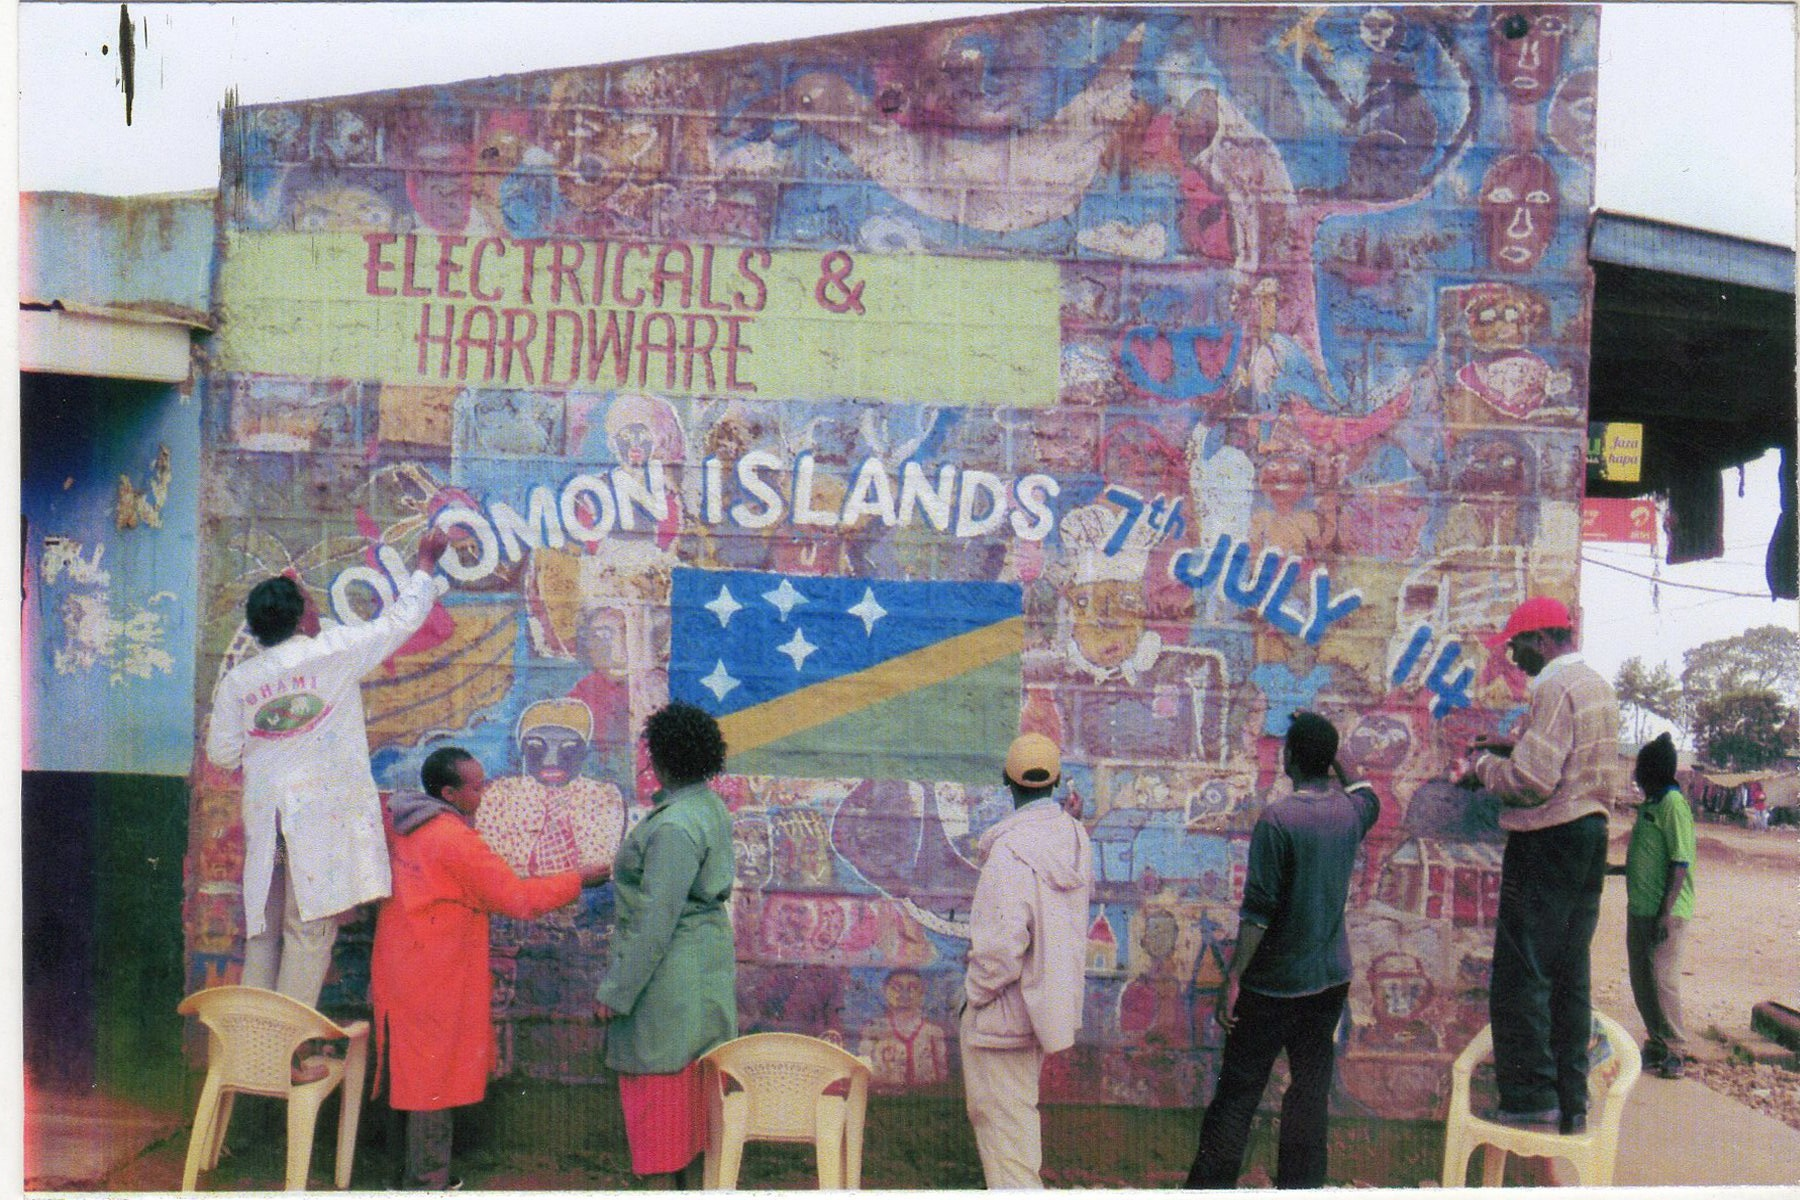 The Ngecha Artist Association in Kenya creates a mural for the people of the Solomon Islands on their independence day (July 7).